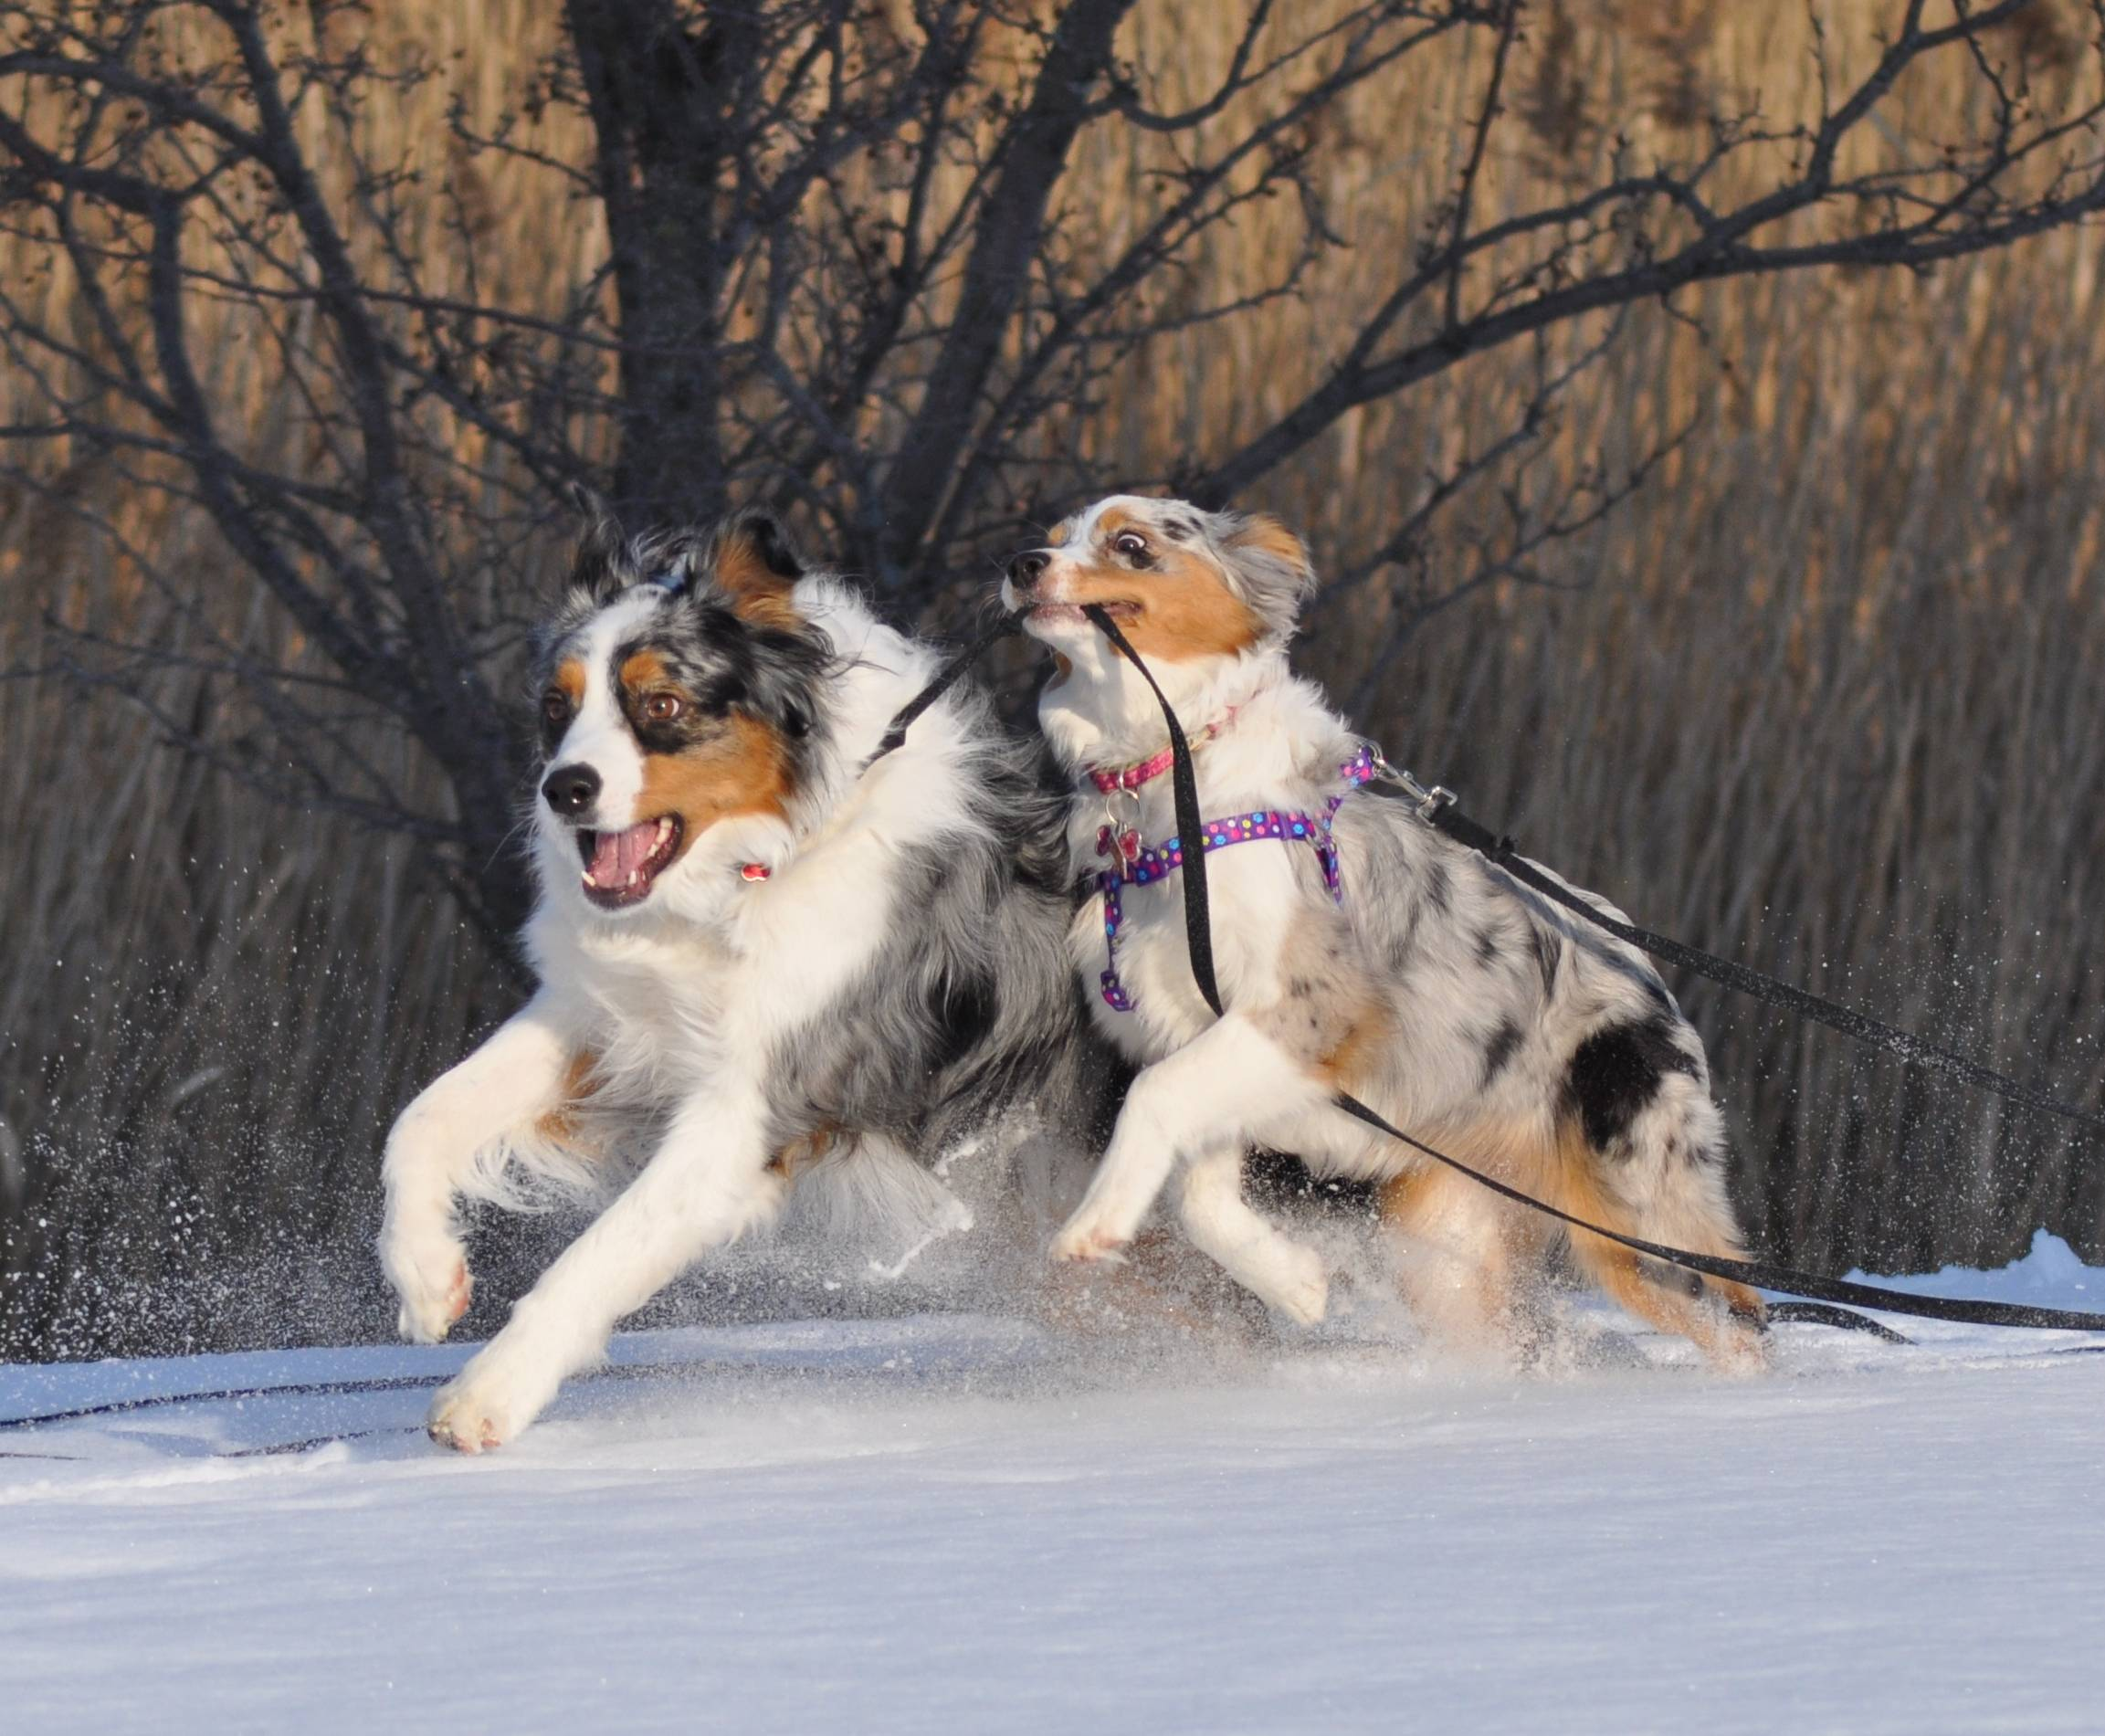 I had taken this photo of our dogs playing in the snow in our backyard recently. I did a rapid firing of picture taking so I didn't miss anything and I think that both the action and great color were captured.